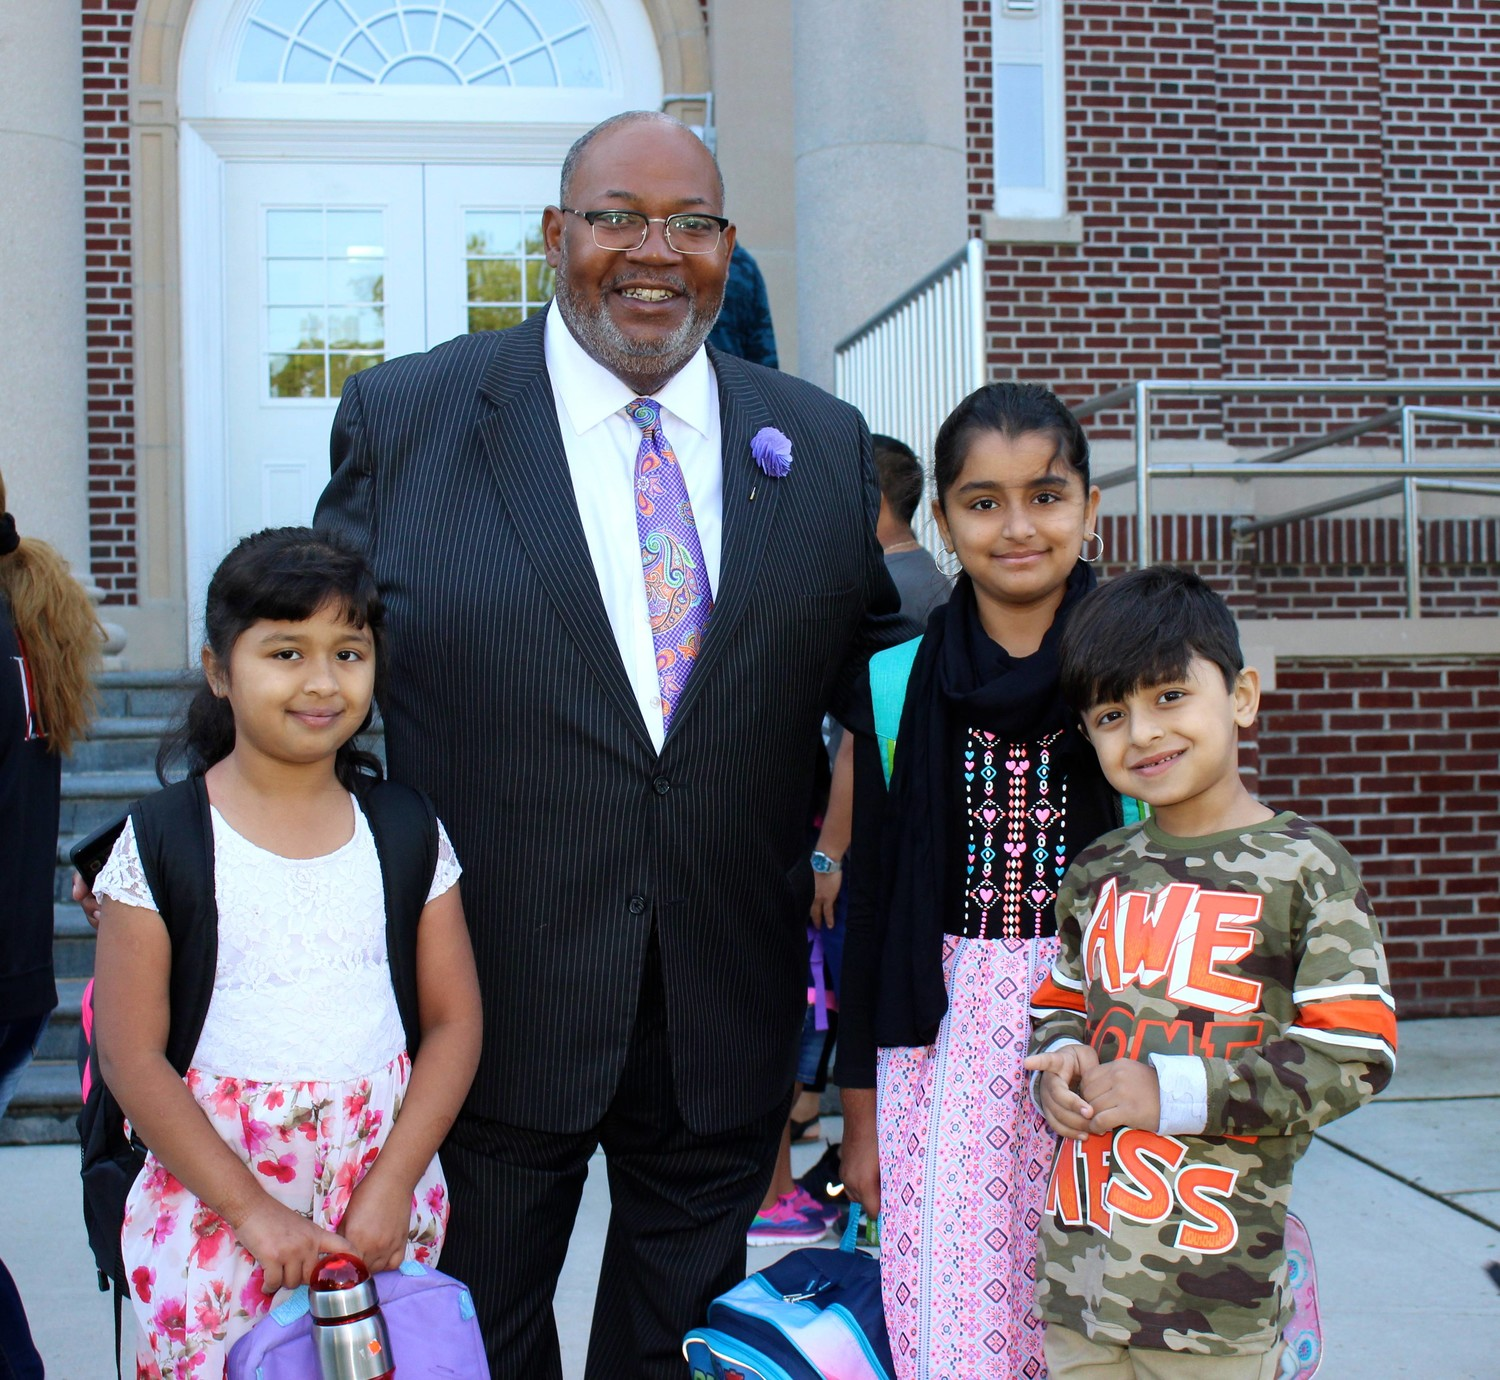 Superintendent of Schools Al Harper greeted students as they entered Clara H. Carlson for the first day of school, such as siblings Sara Shahdat, Fiza Shahdat and Tabish Bhatti.